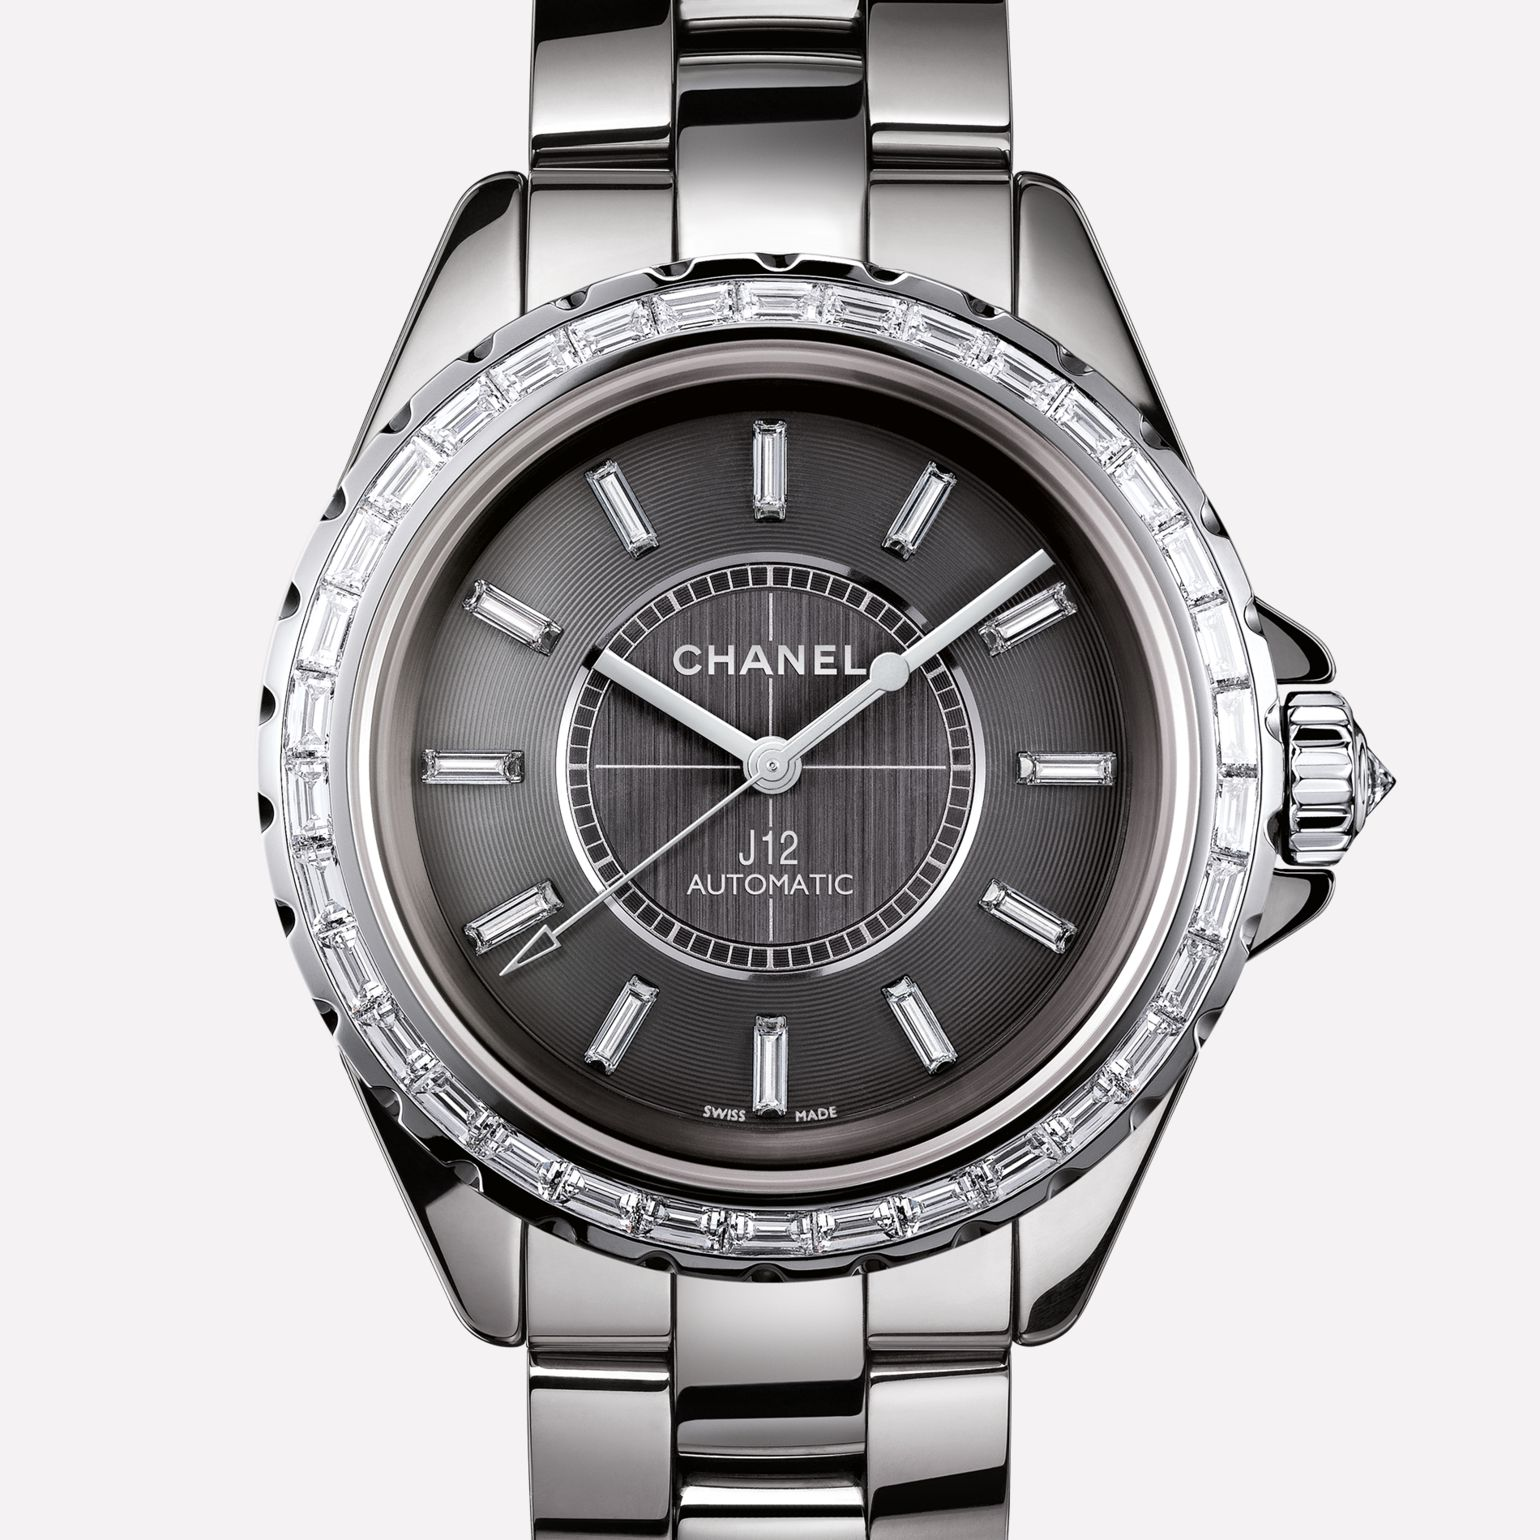 J12 Jewellery Watch Titanium ceramic and white gold, bezel and indicators with baguette cut diamonds